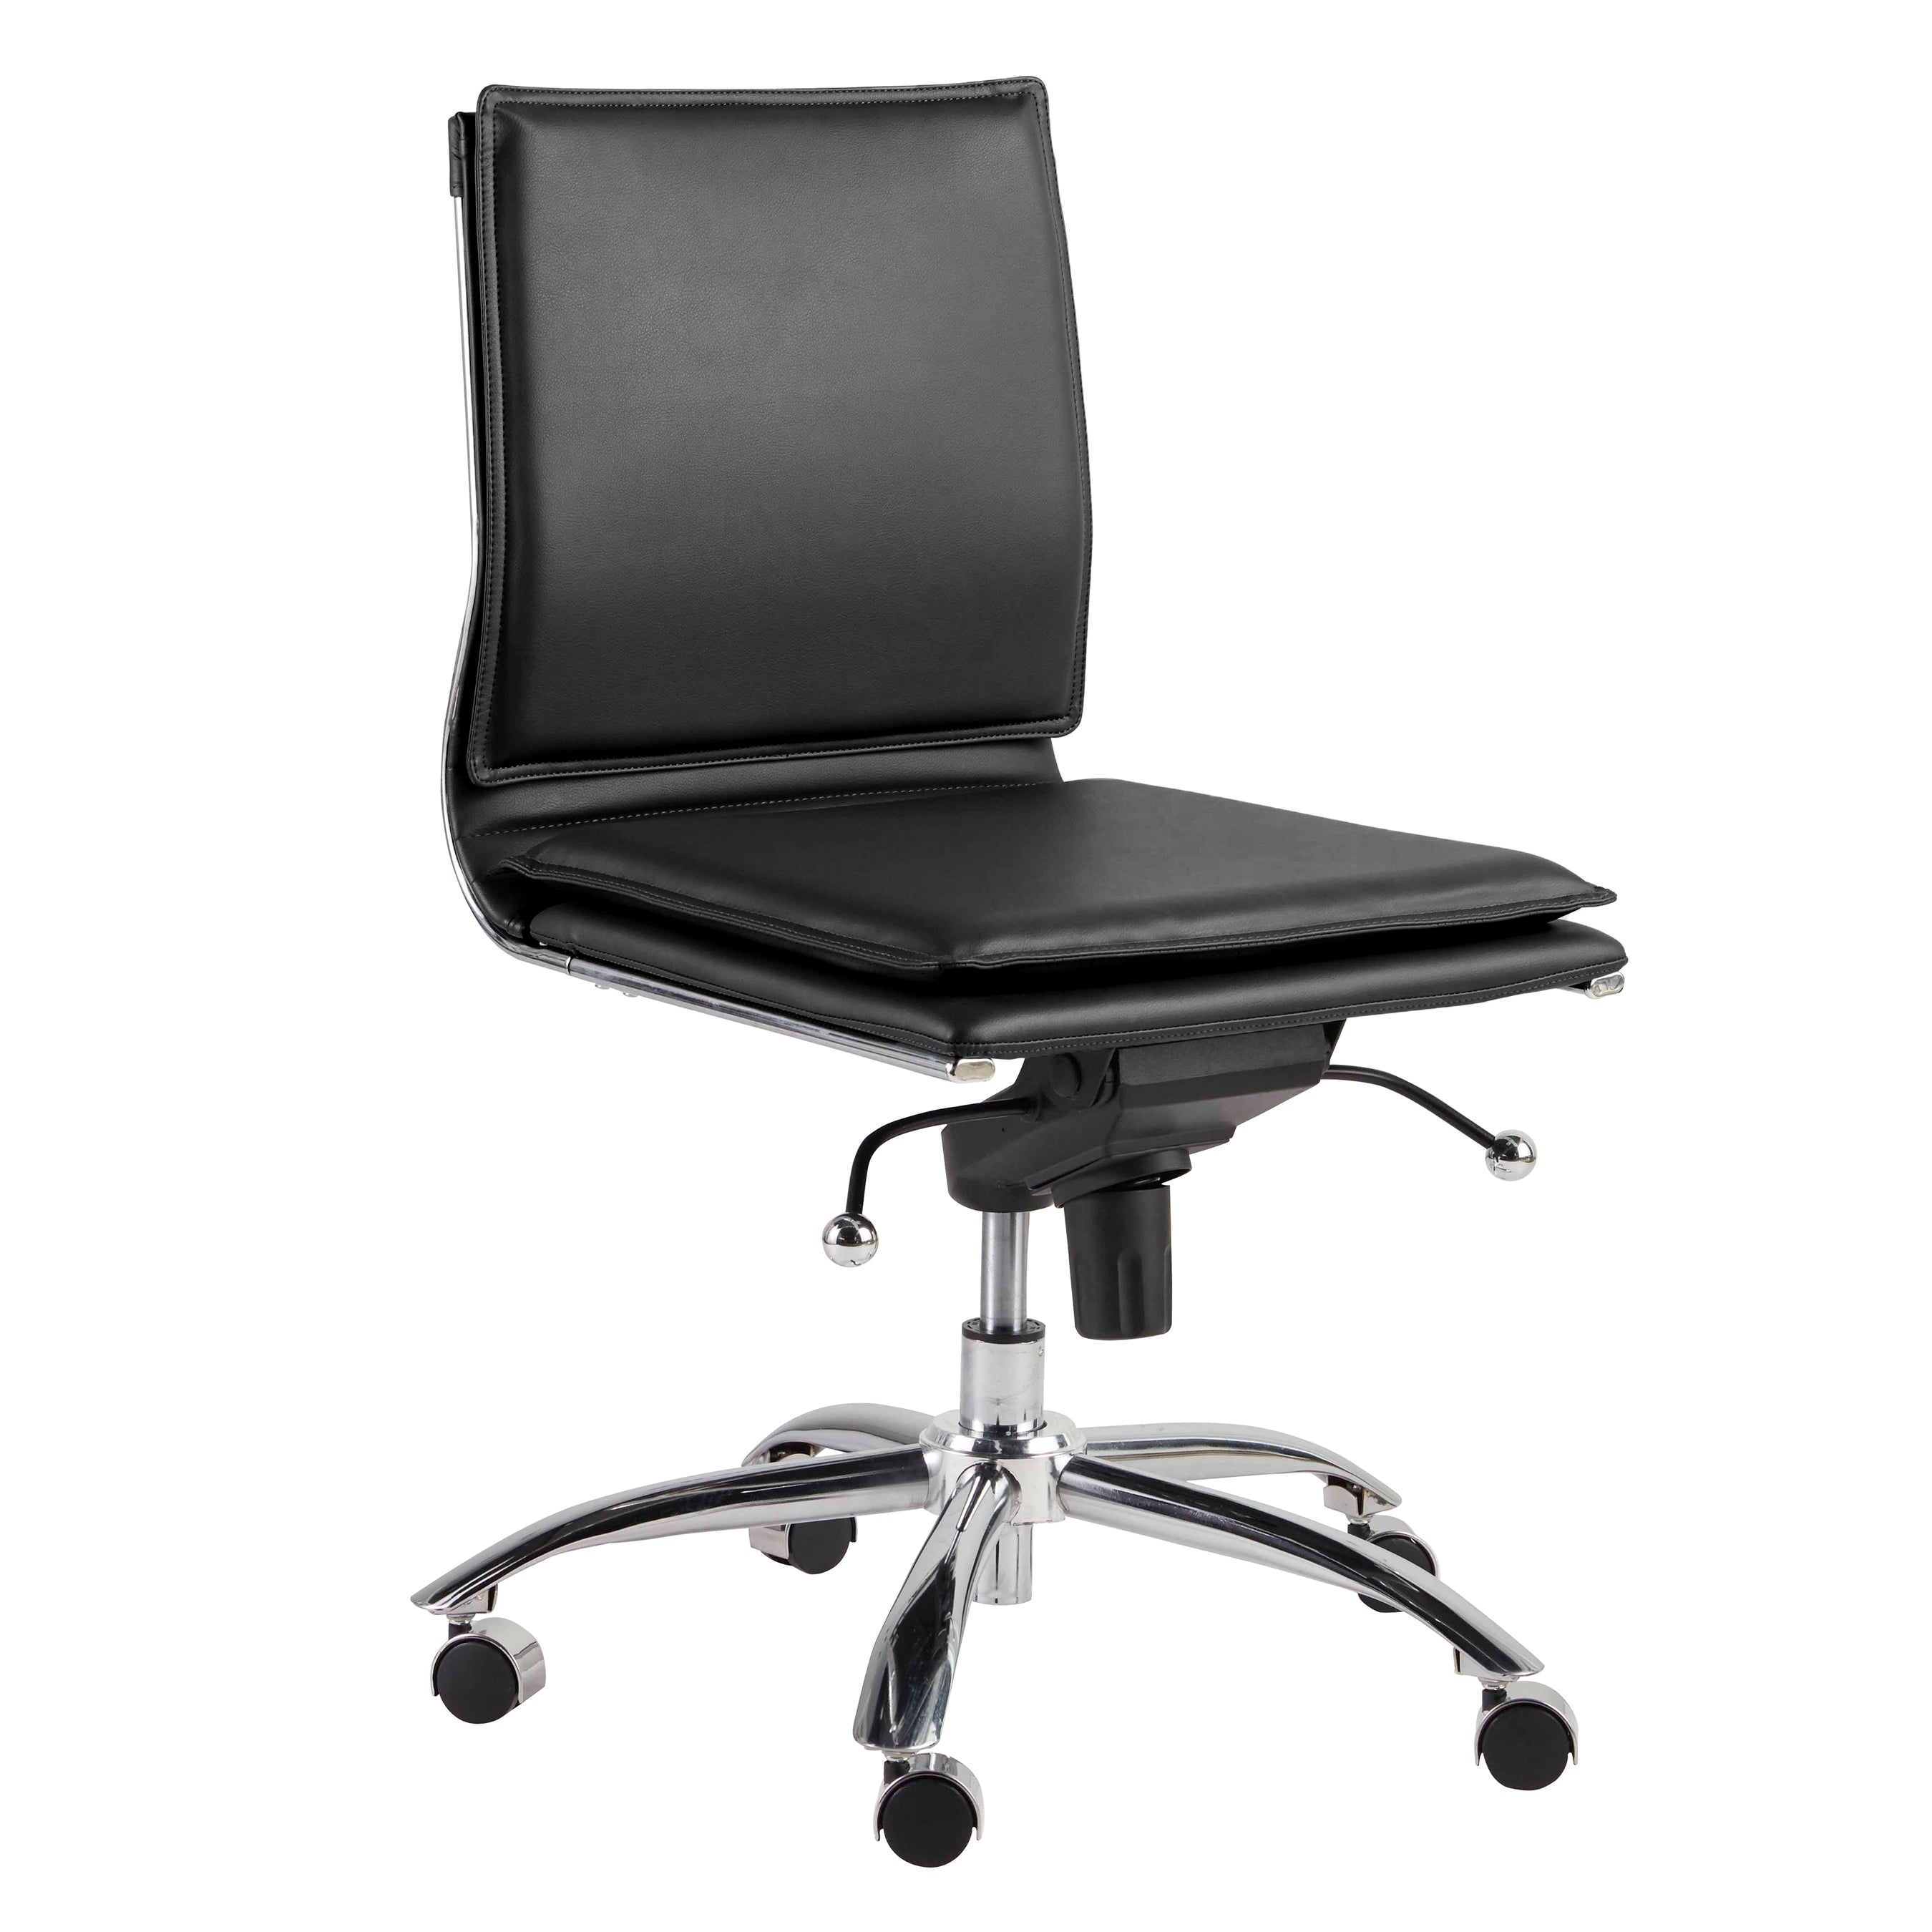 Black Low Back Adjustable Armless Conference or Office Chair